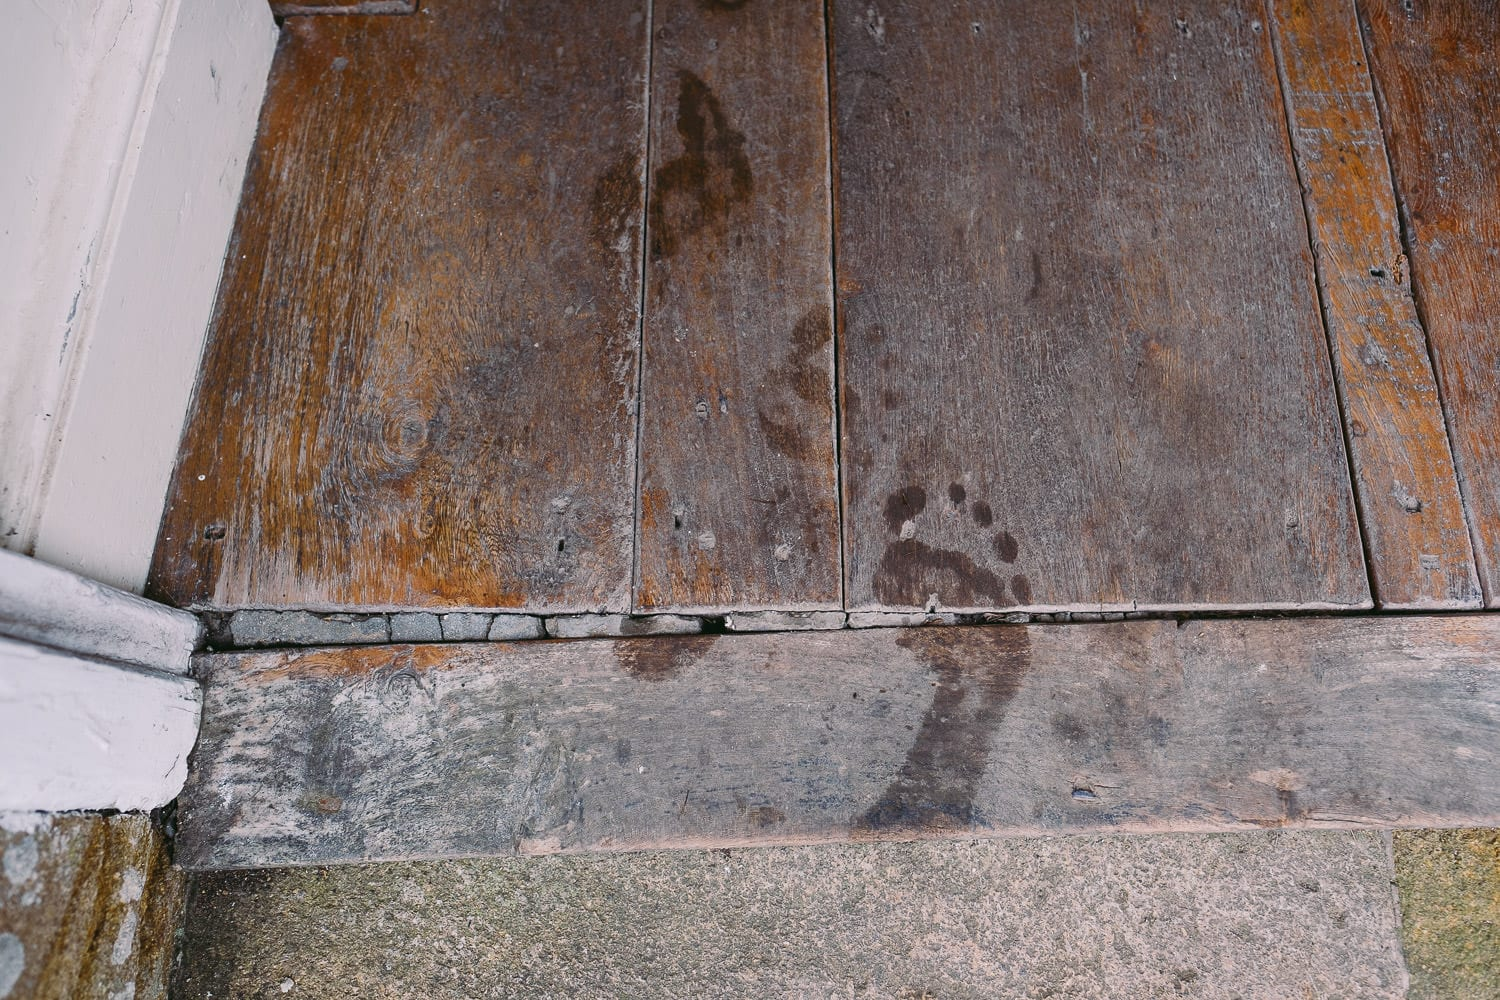 Wet footprints on the steps at Brympton House